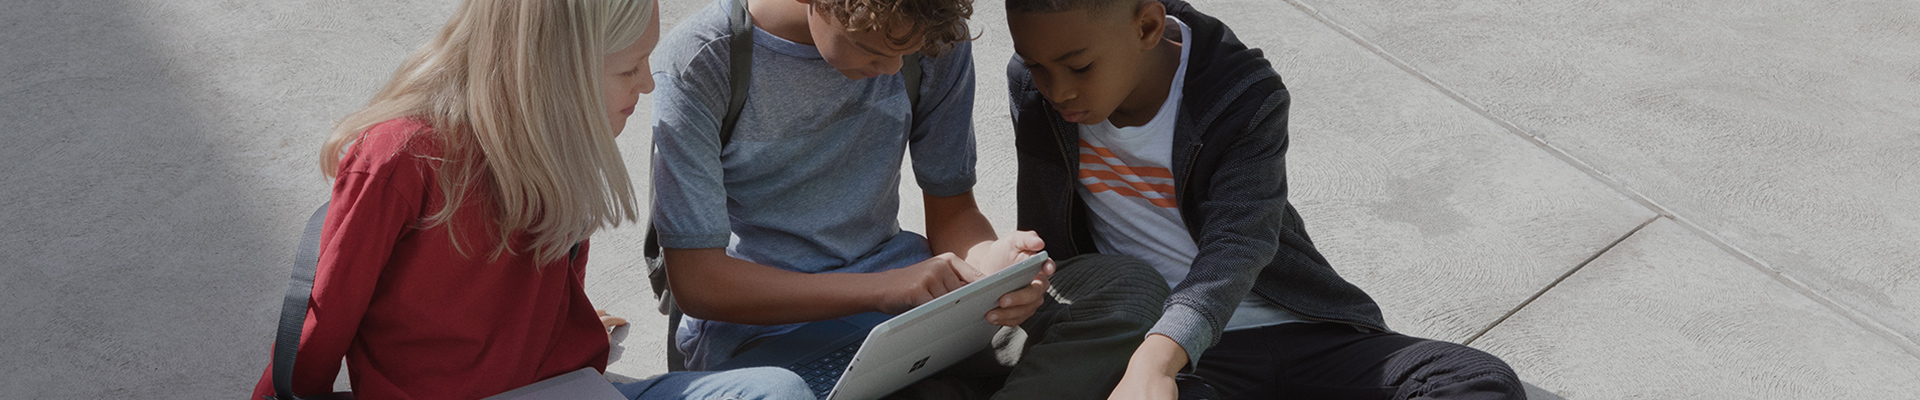 Students using Microsoft Surface device on the school yard